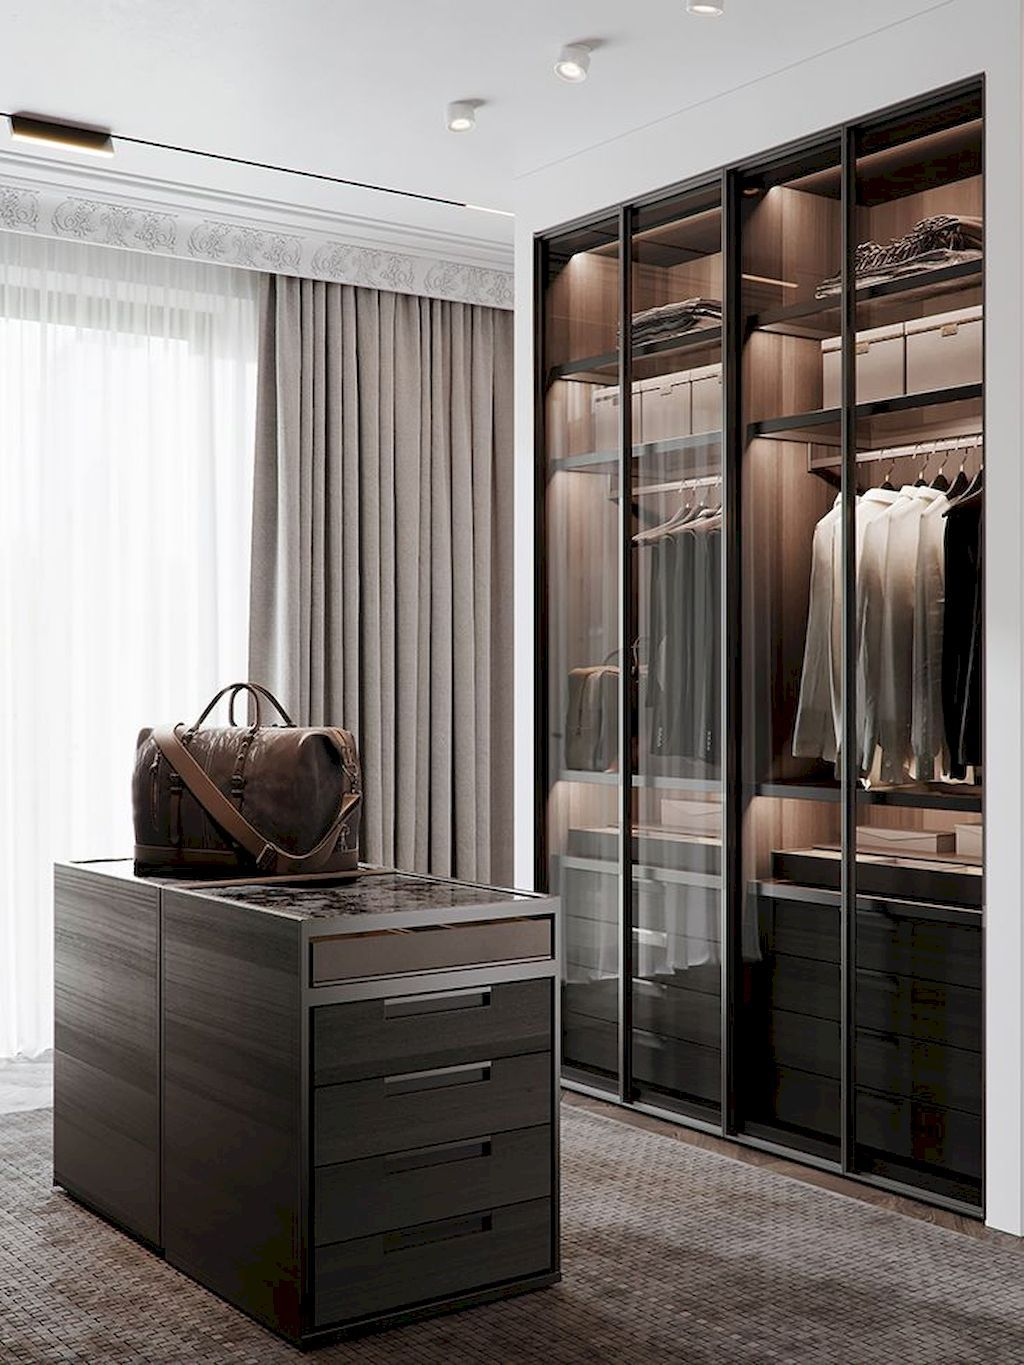 Dress Room Design: The Way To Create Your Personal Customized Wardrobe Design